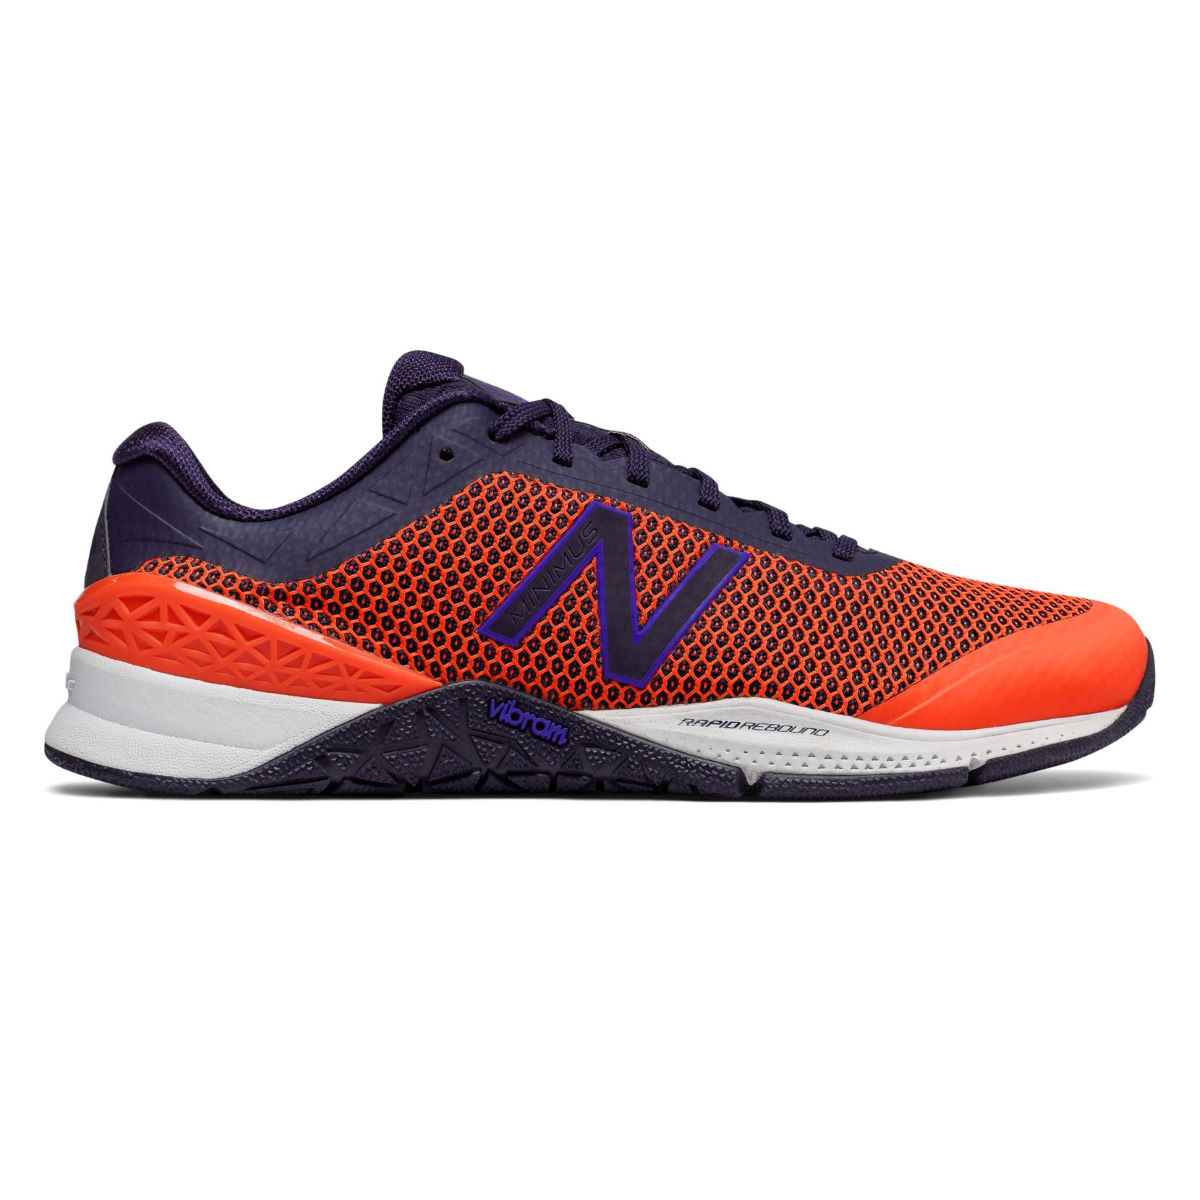 Chaussures New Balance MX40 v1 - UK 11 Orange/Blue Chaussures de gym